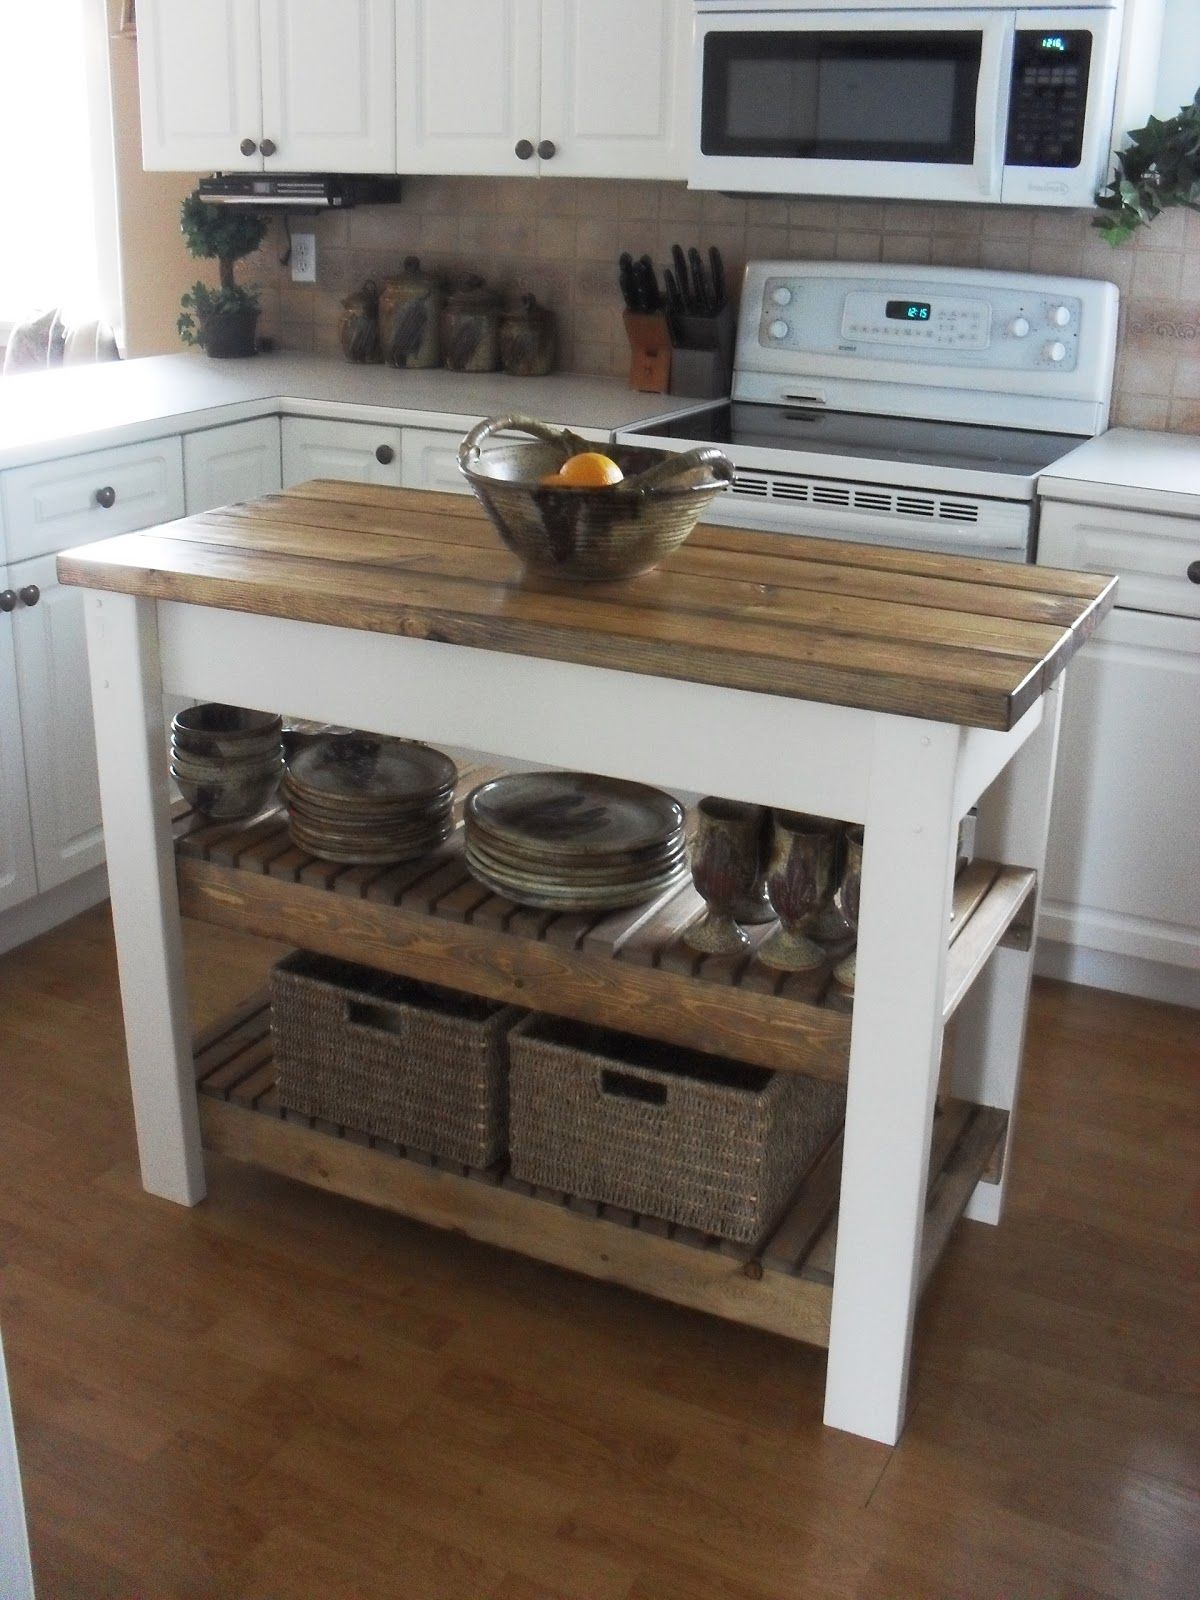 Small but stylish kitchen savvy storage ideas any extra for Extra storage for small kitchen